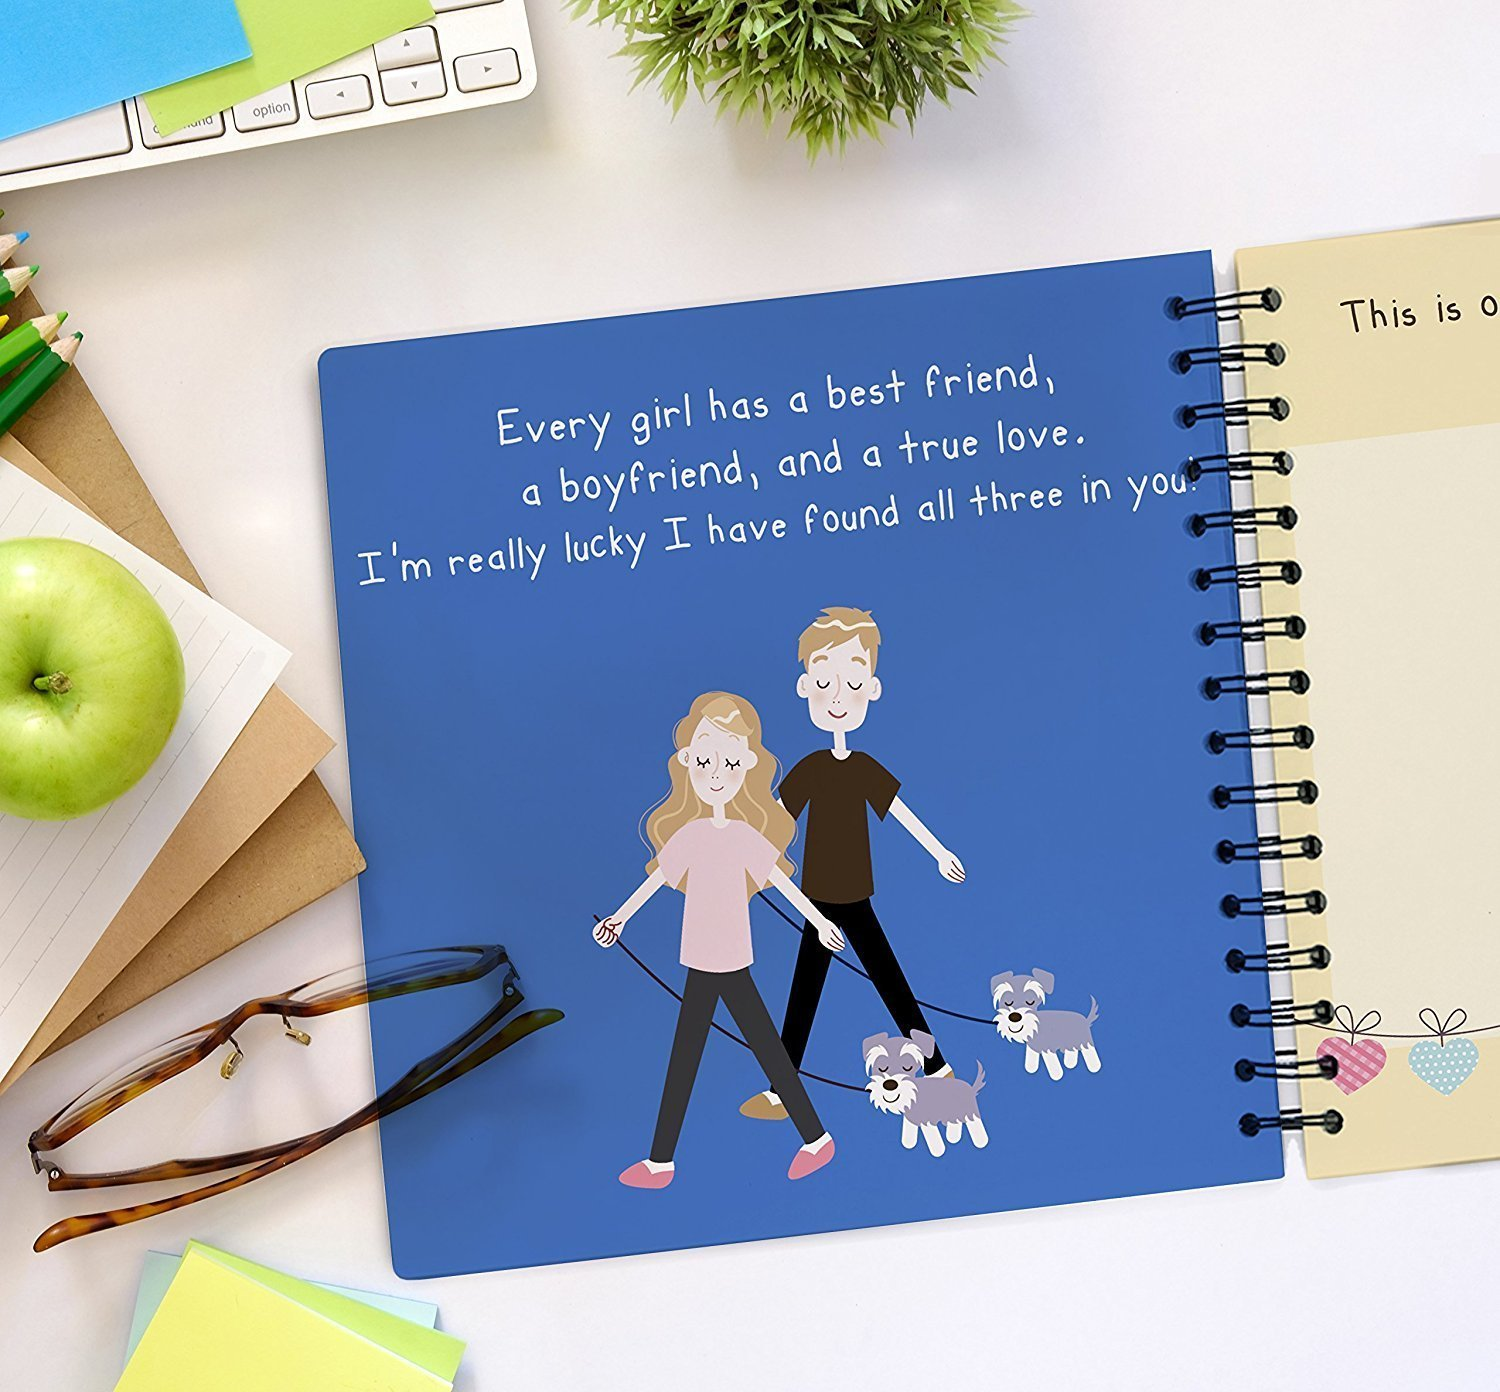 Best Boyfriend Ever Memory Book - The Best Romantic Gift Ideas For Your Boyfriend! Your BF Will Love This Cute Present For His Birthday, Valentine's Day, Christmas Or A Special Date! by Unconditional Rosie (Image #4)